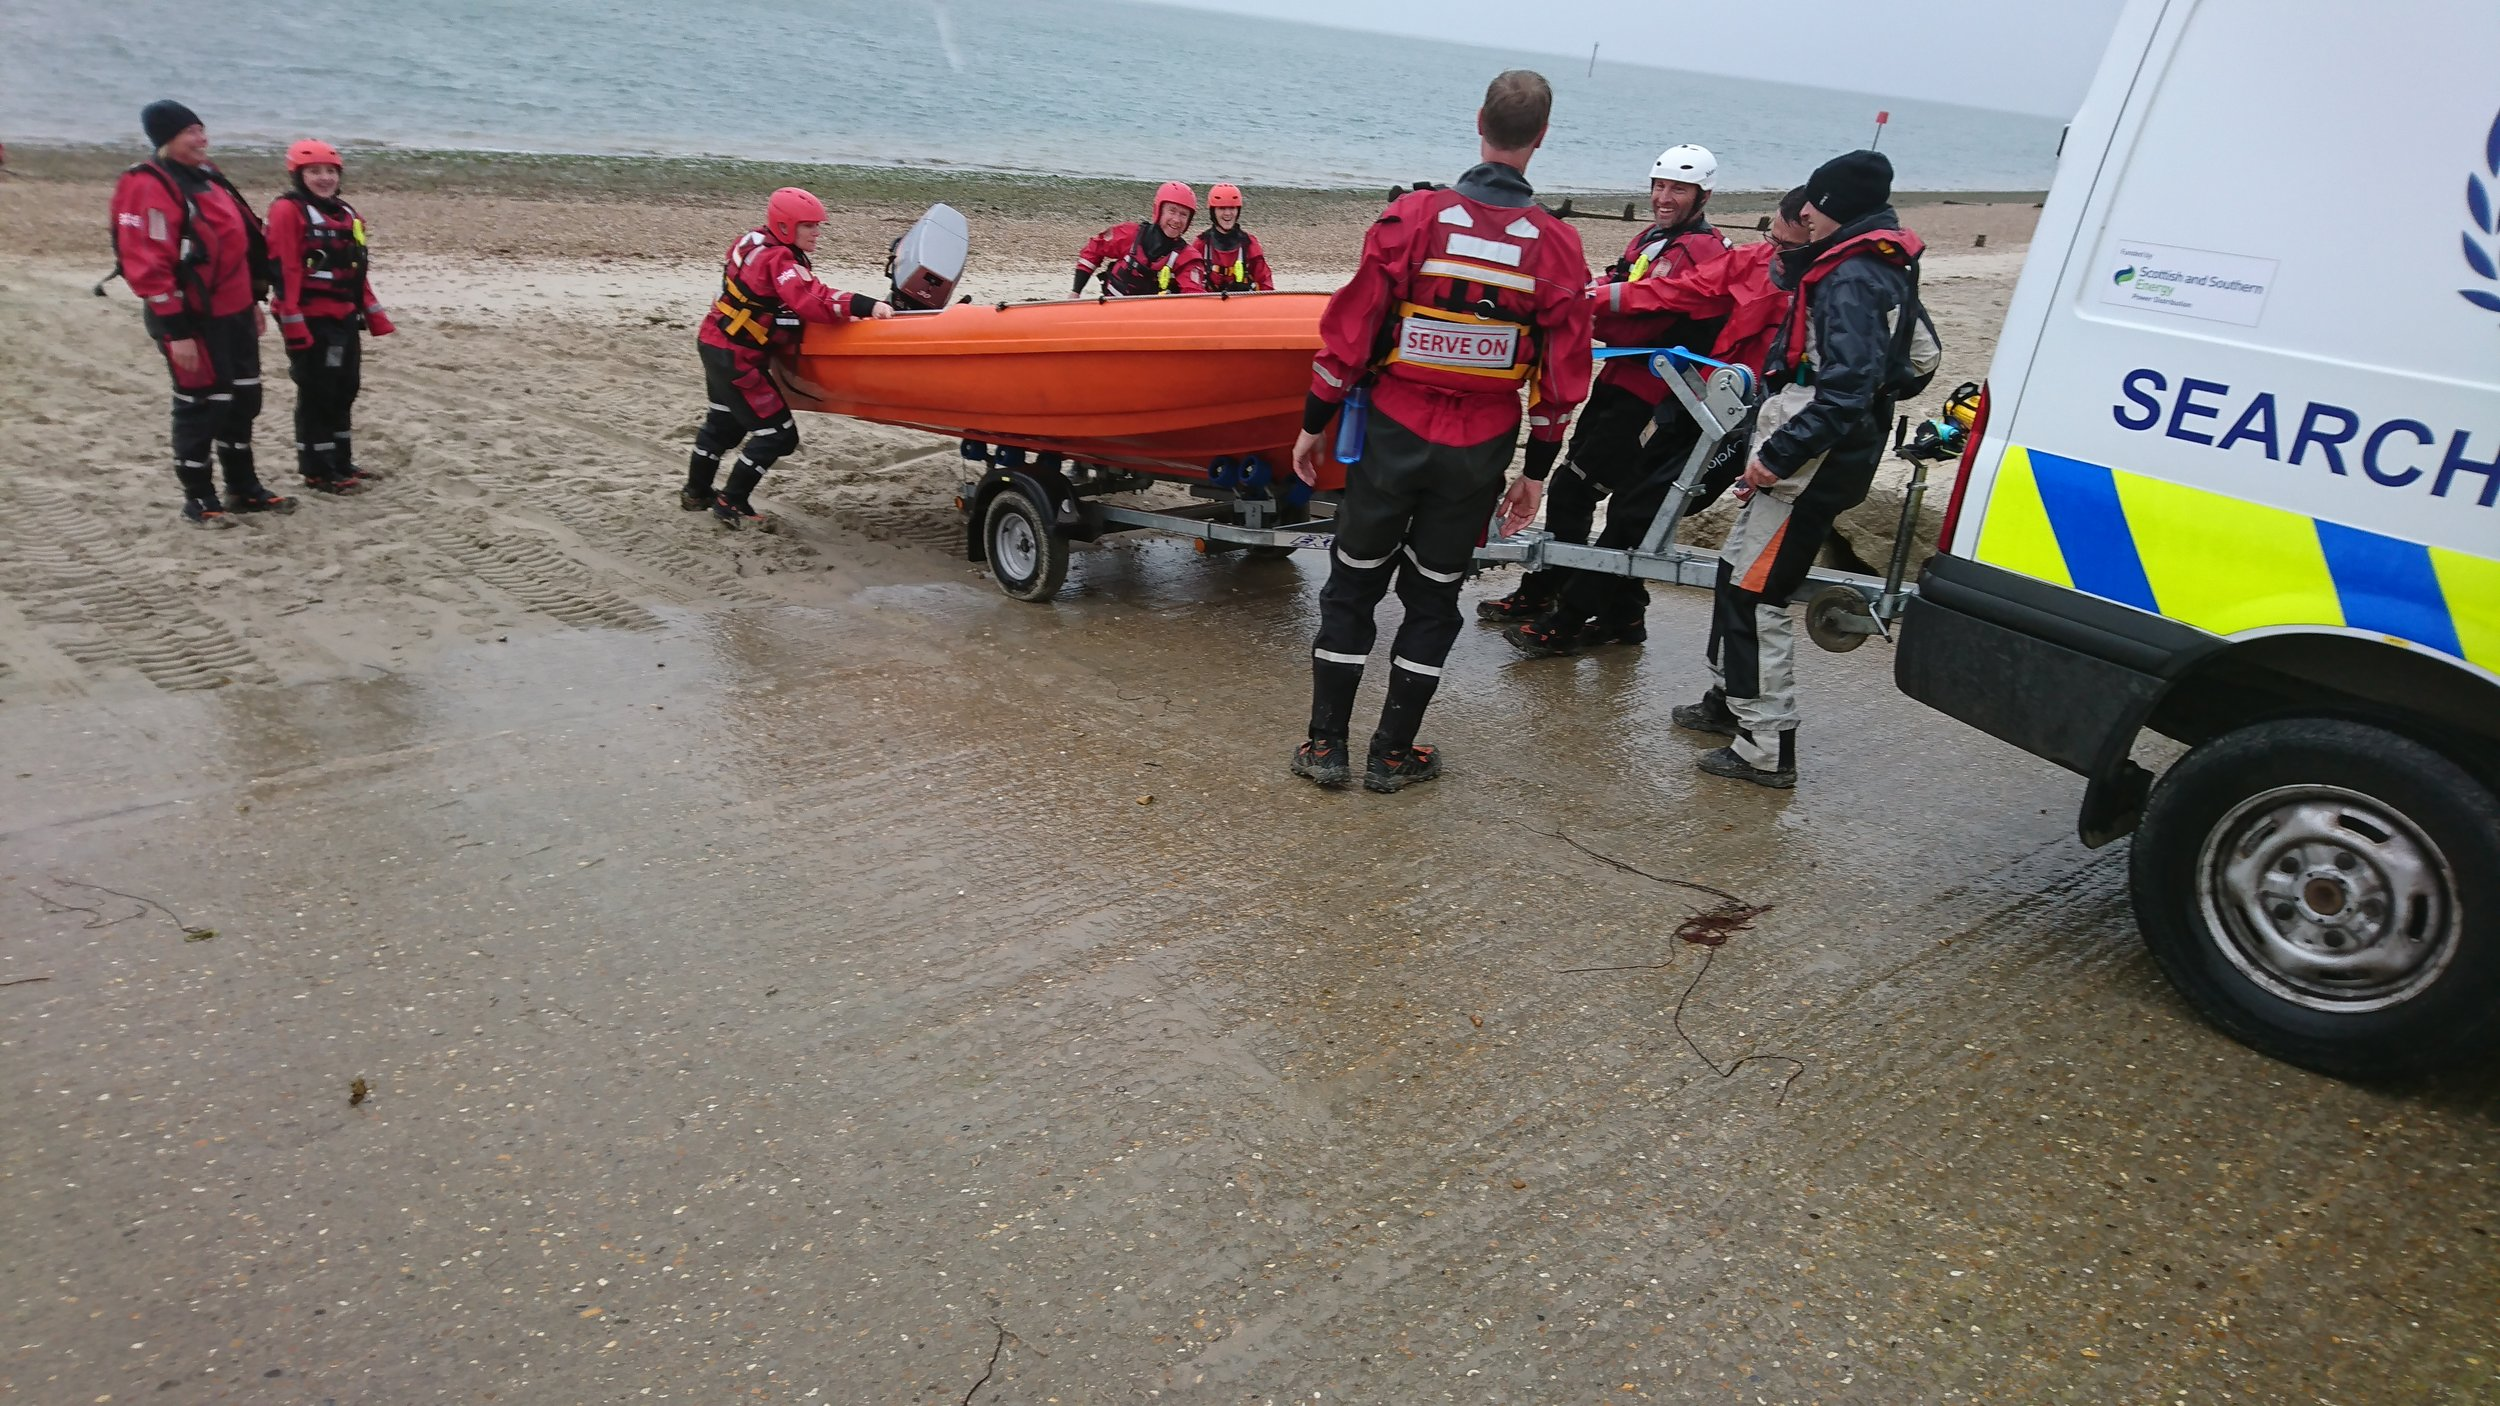 Serve On volunteers providing safety cover at a Hayling Island Sailing Club event.